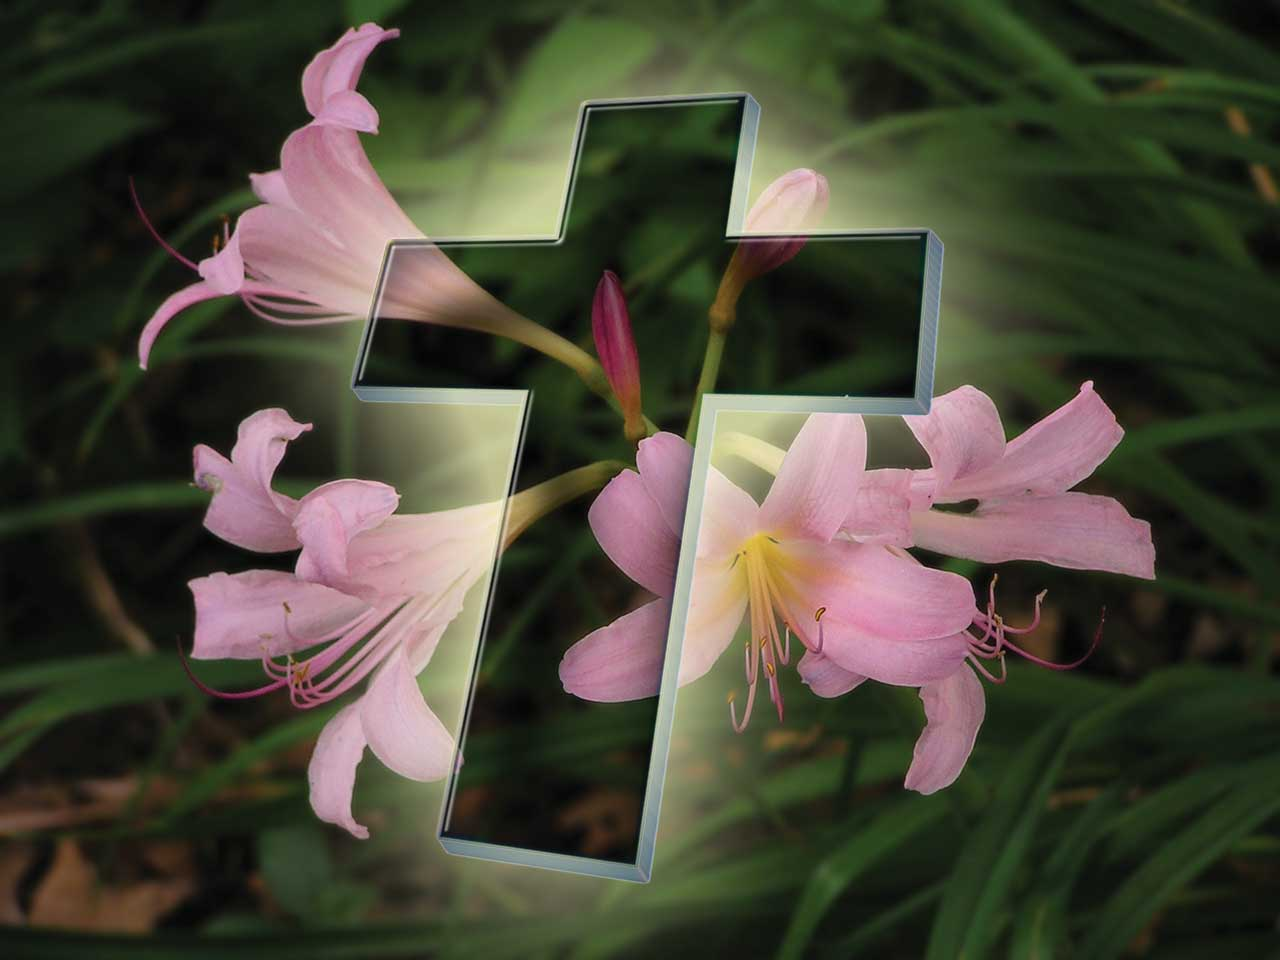 Easter wallpapershappy easter wallpapersreligious wallpaperseaster 1280x960